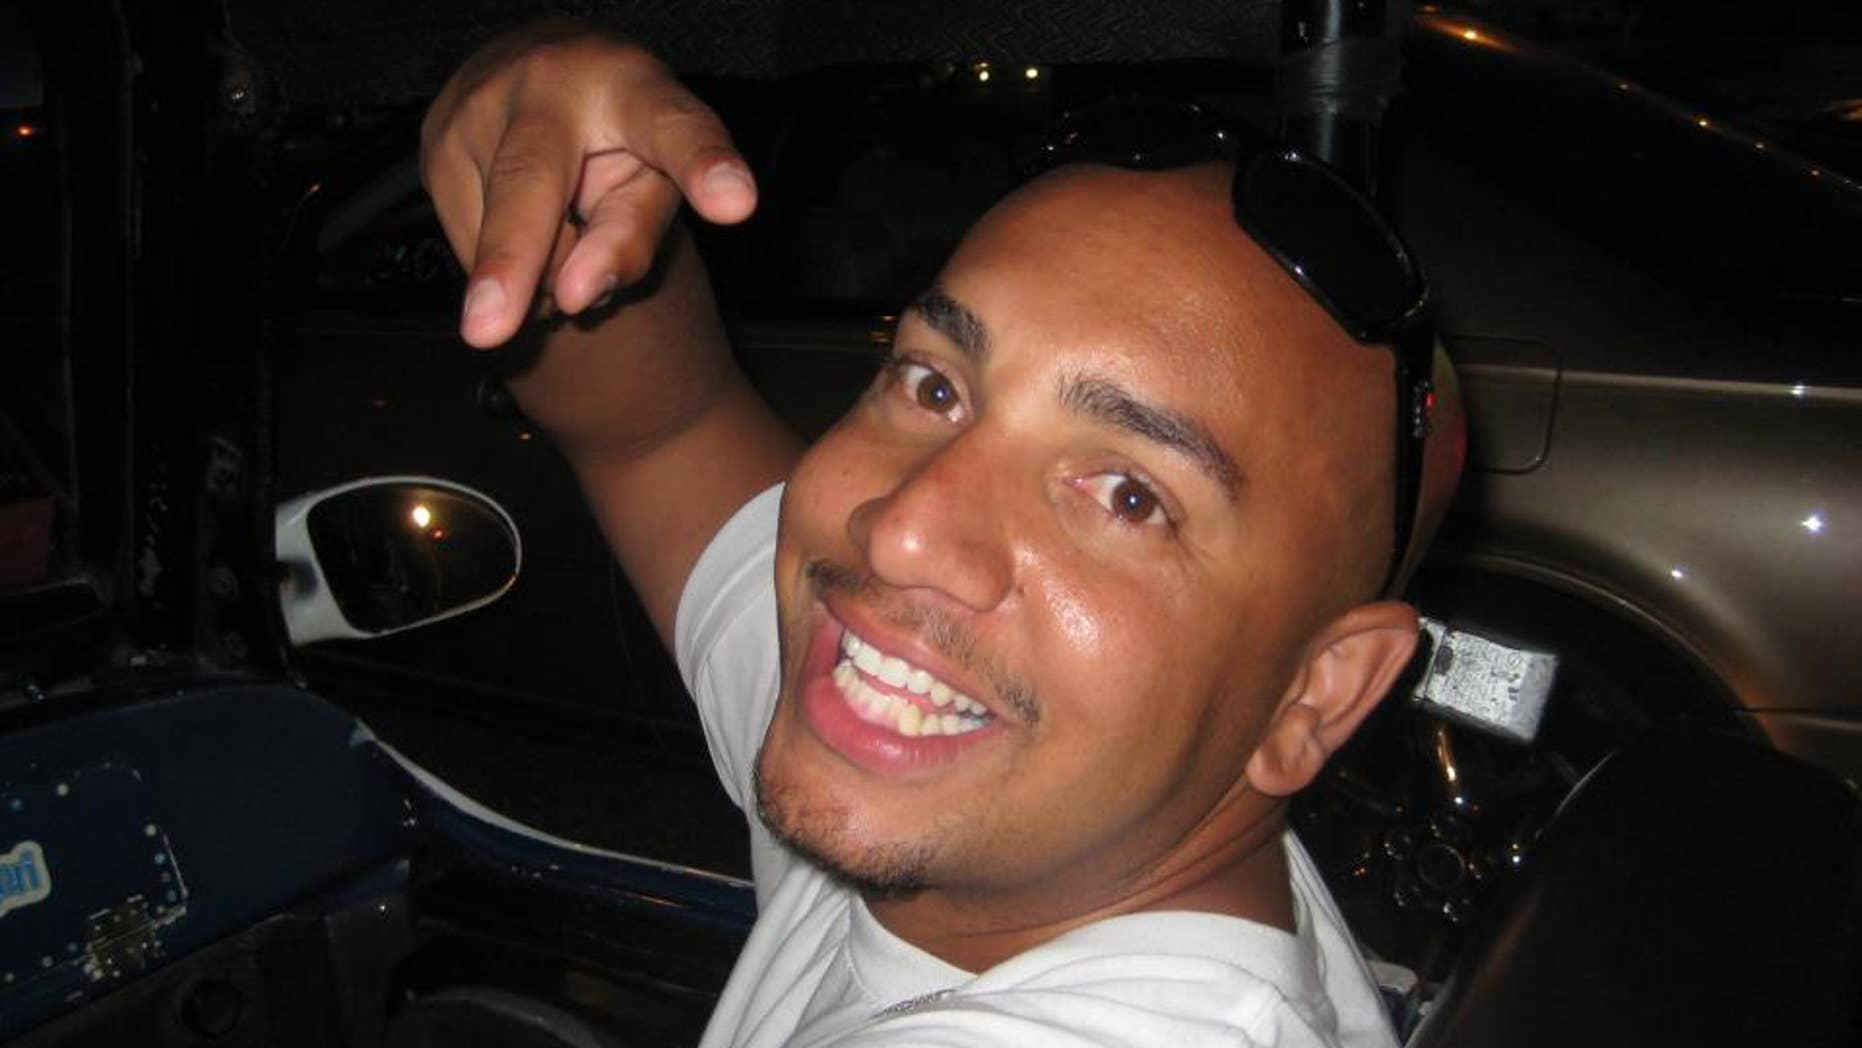 The two Portland State University police officers who fatally shot Jason E. Washington, 45, of Portland, Ore., in June will not face criminal charges, a grand jury ruled Thursday.